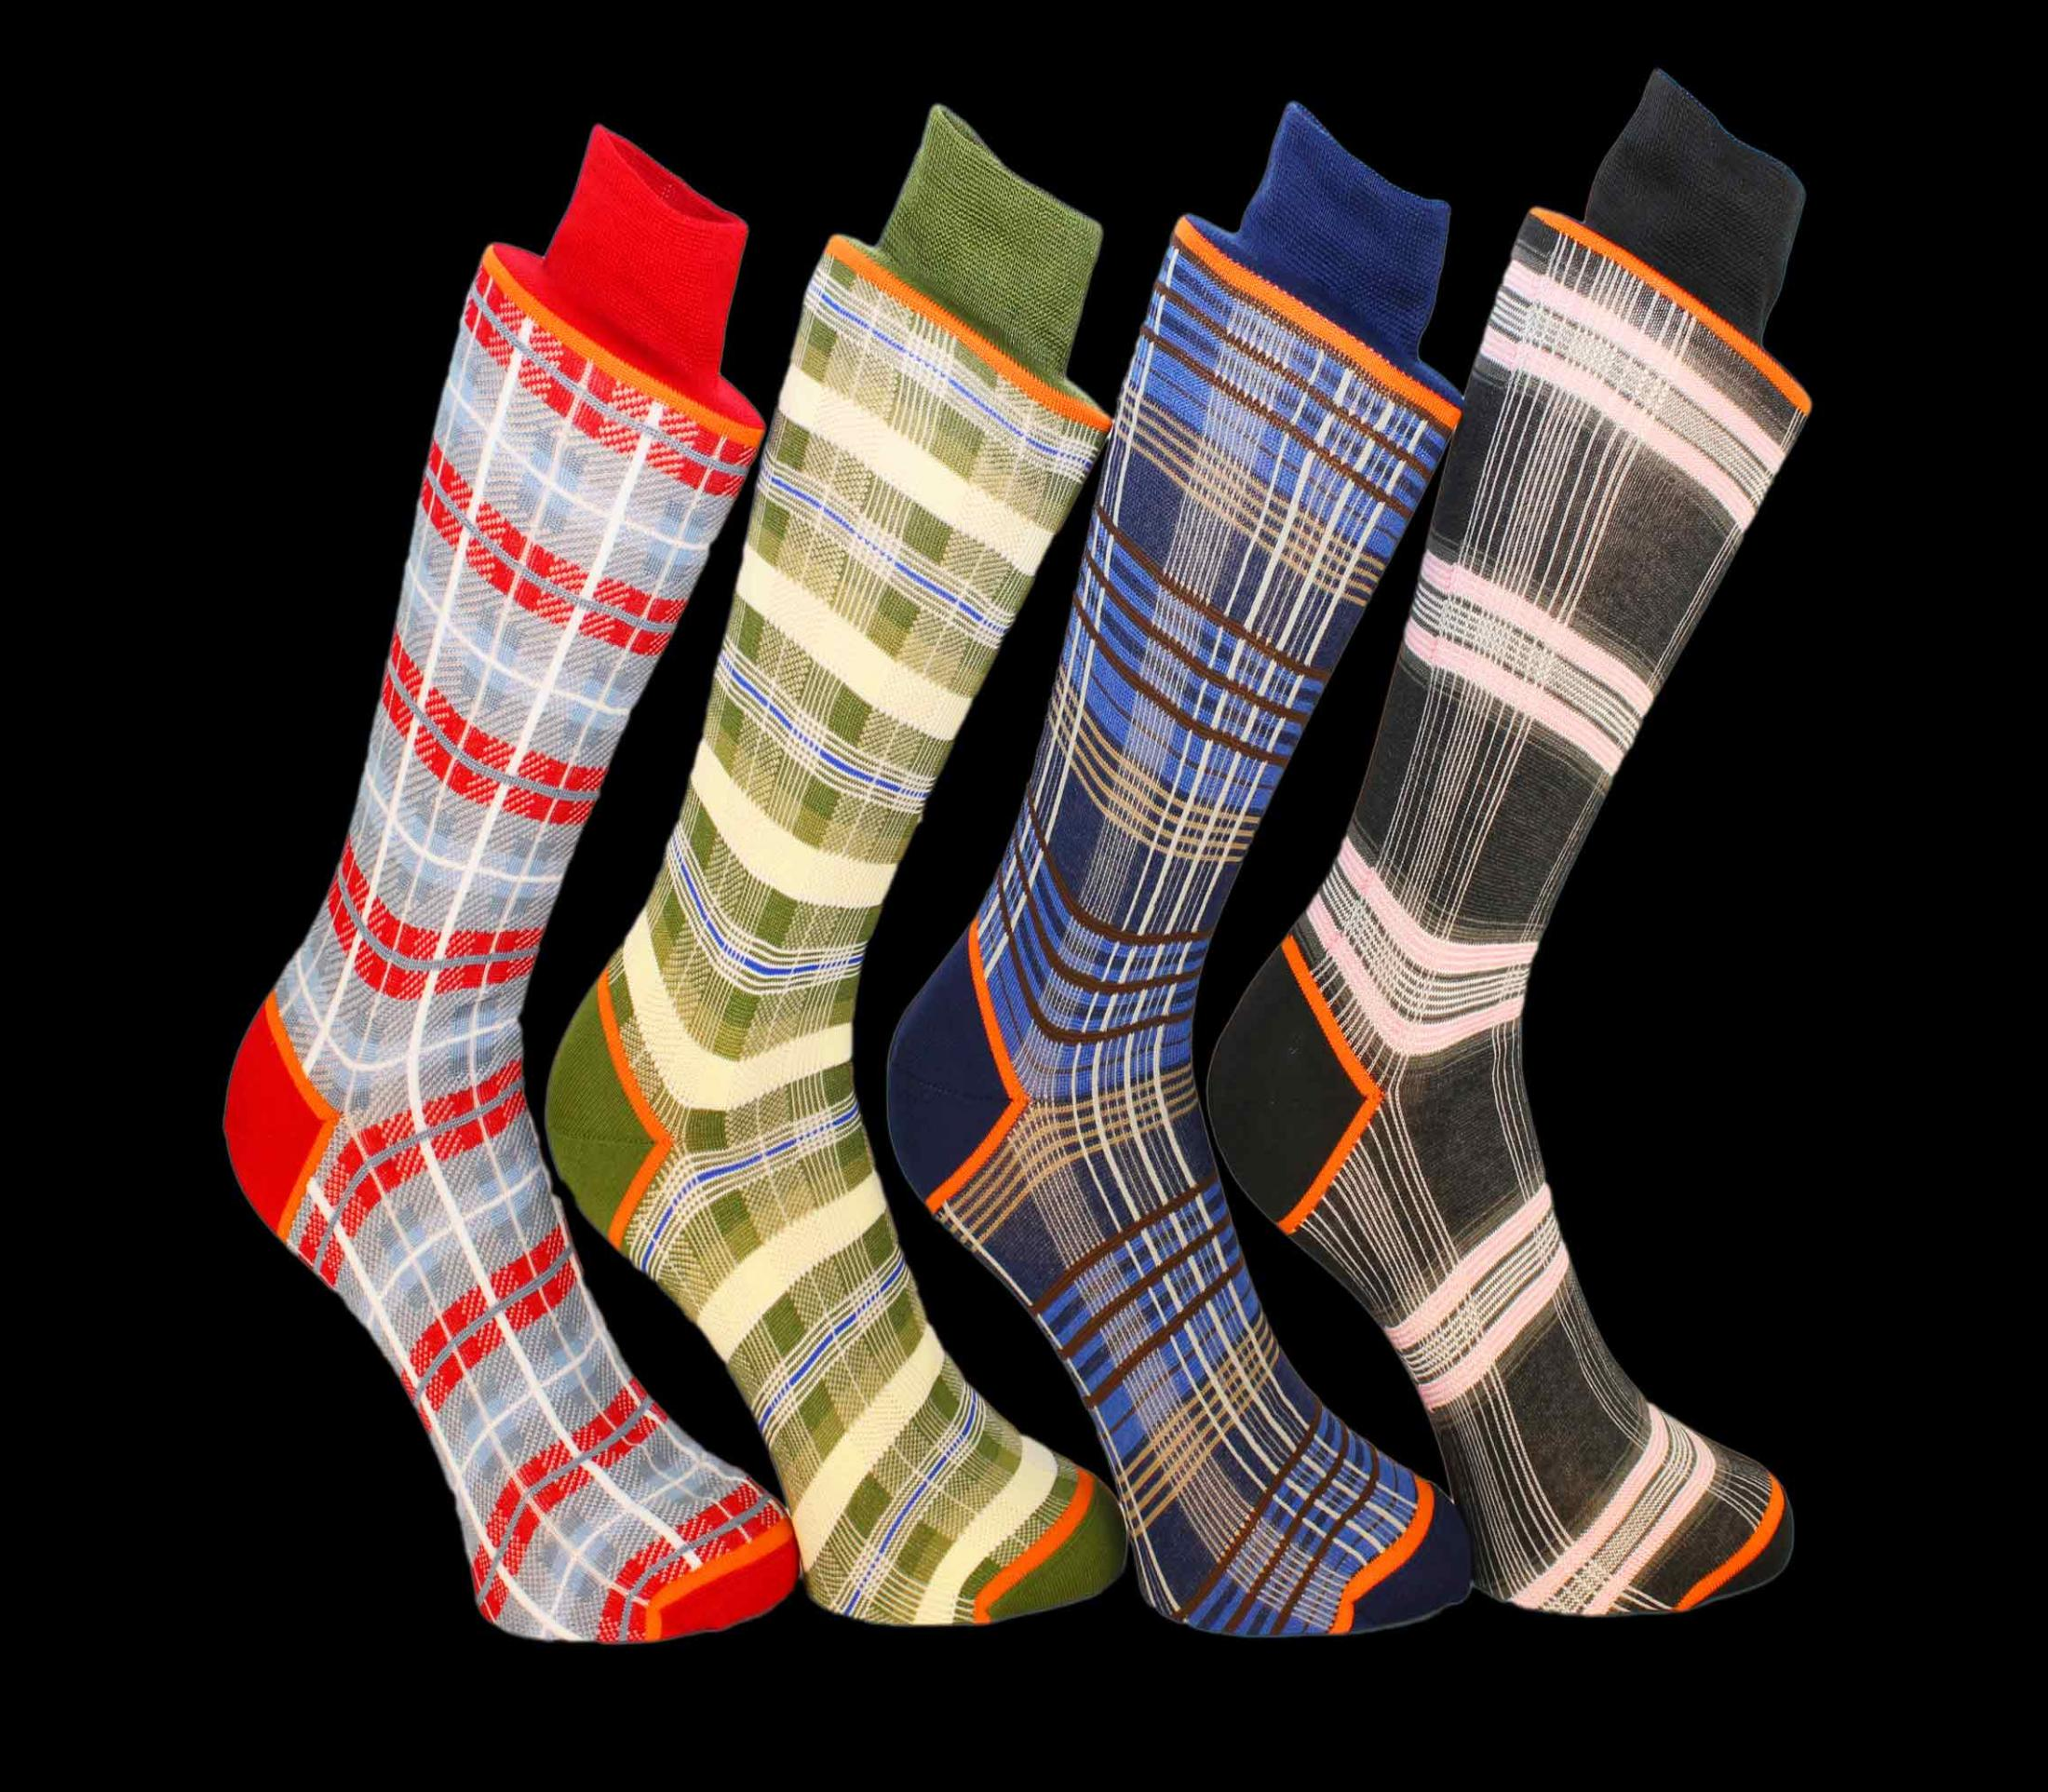 Now you'll find designer men's socks everywhere from skateboards to the boardroom. We know not all men have the same passions and interests, so we have a wide range of socks .